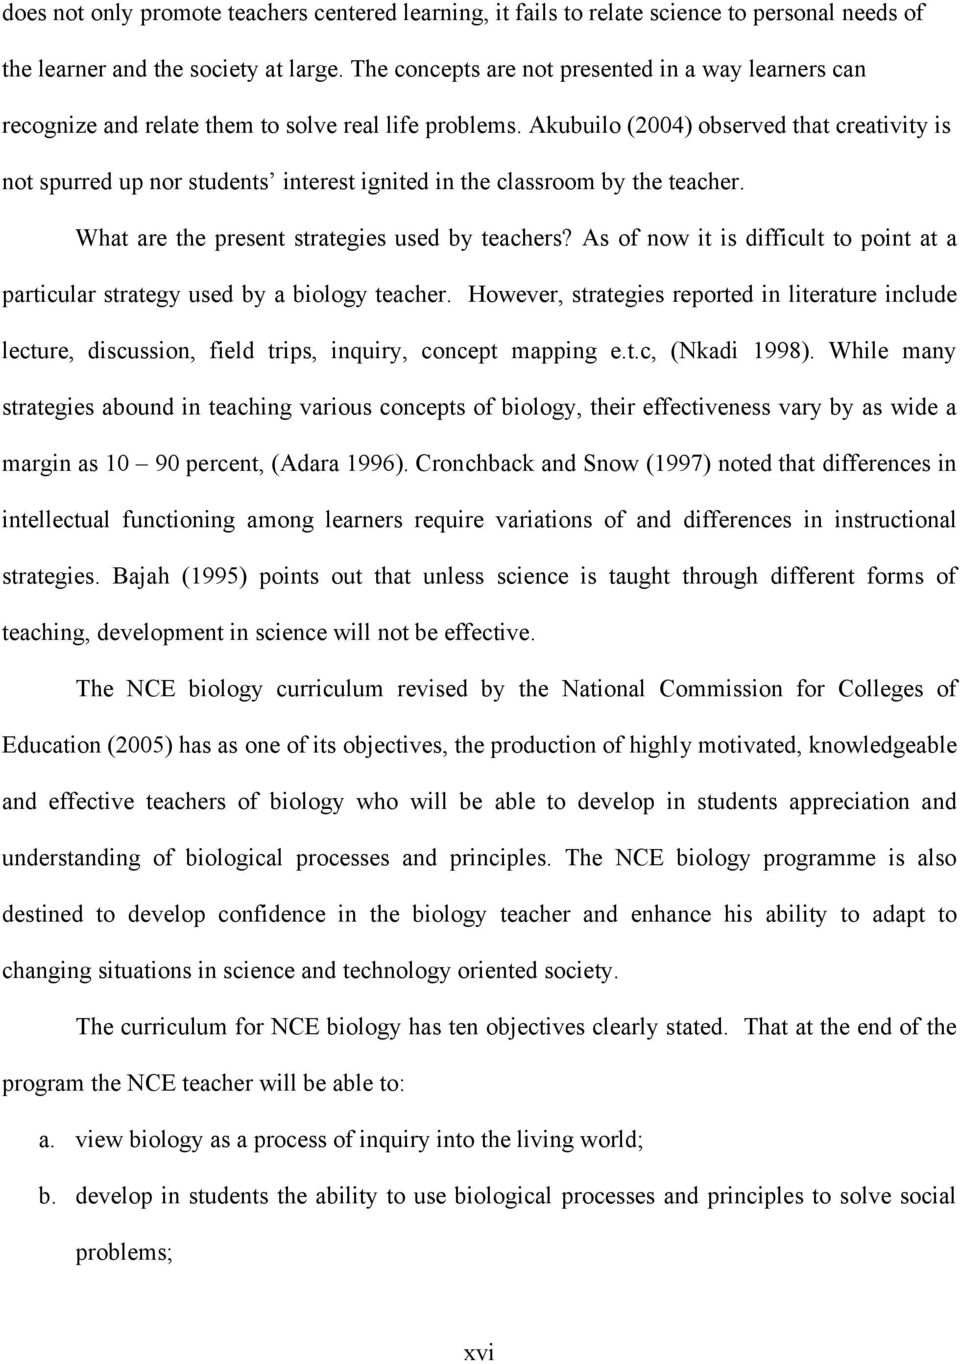 Creative writing primary disorders essay for me discount code biography essay starters for fourth fandeluxe Gallery